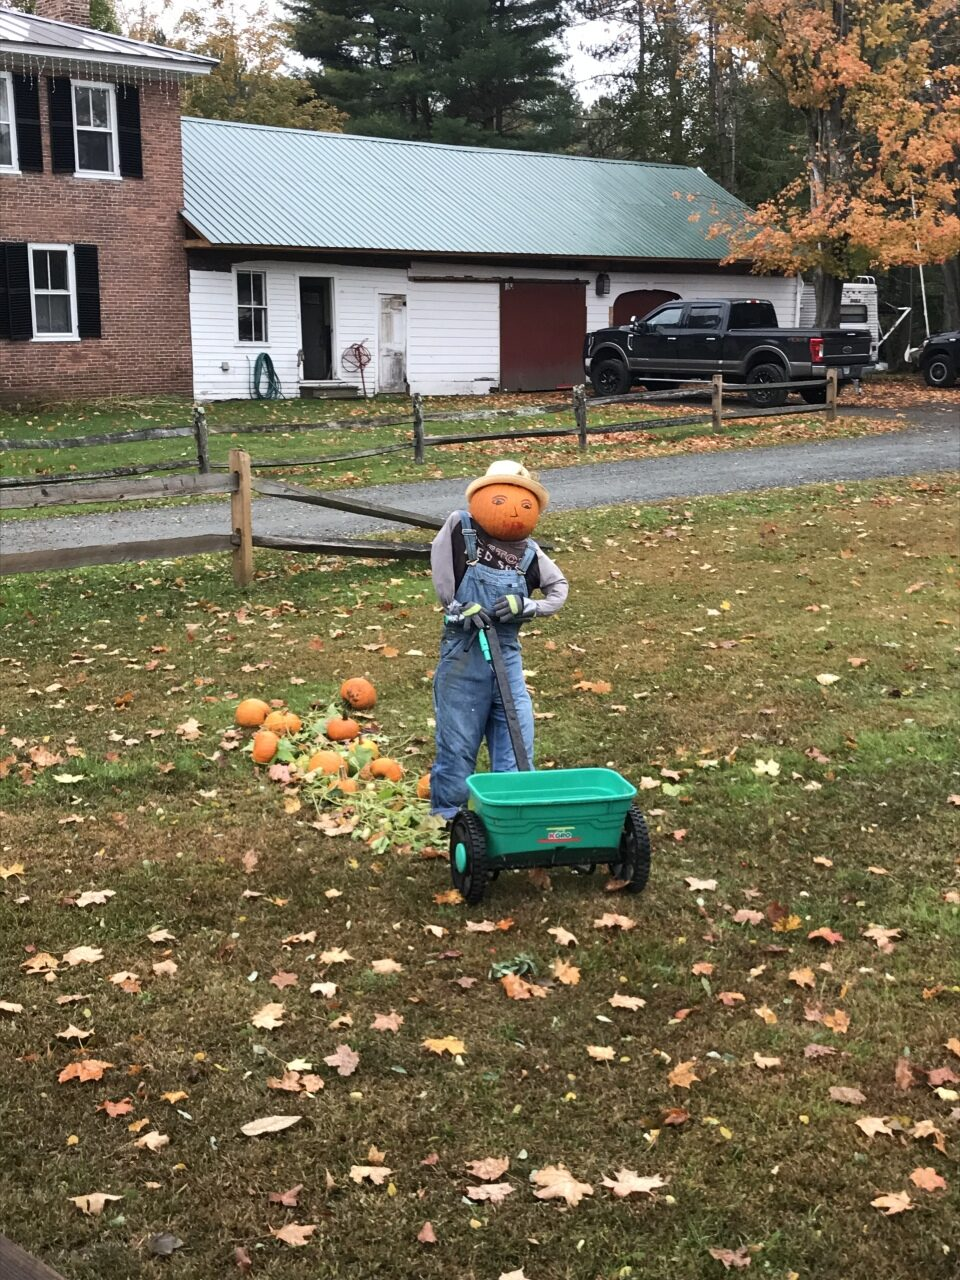 Fertilizing the pumpkins at 1103 Route 12A